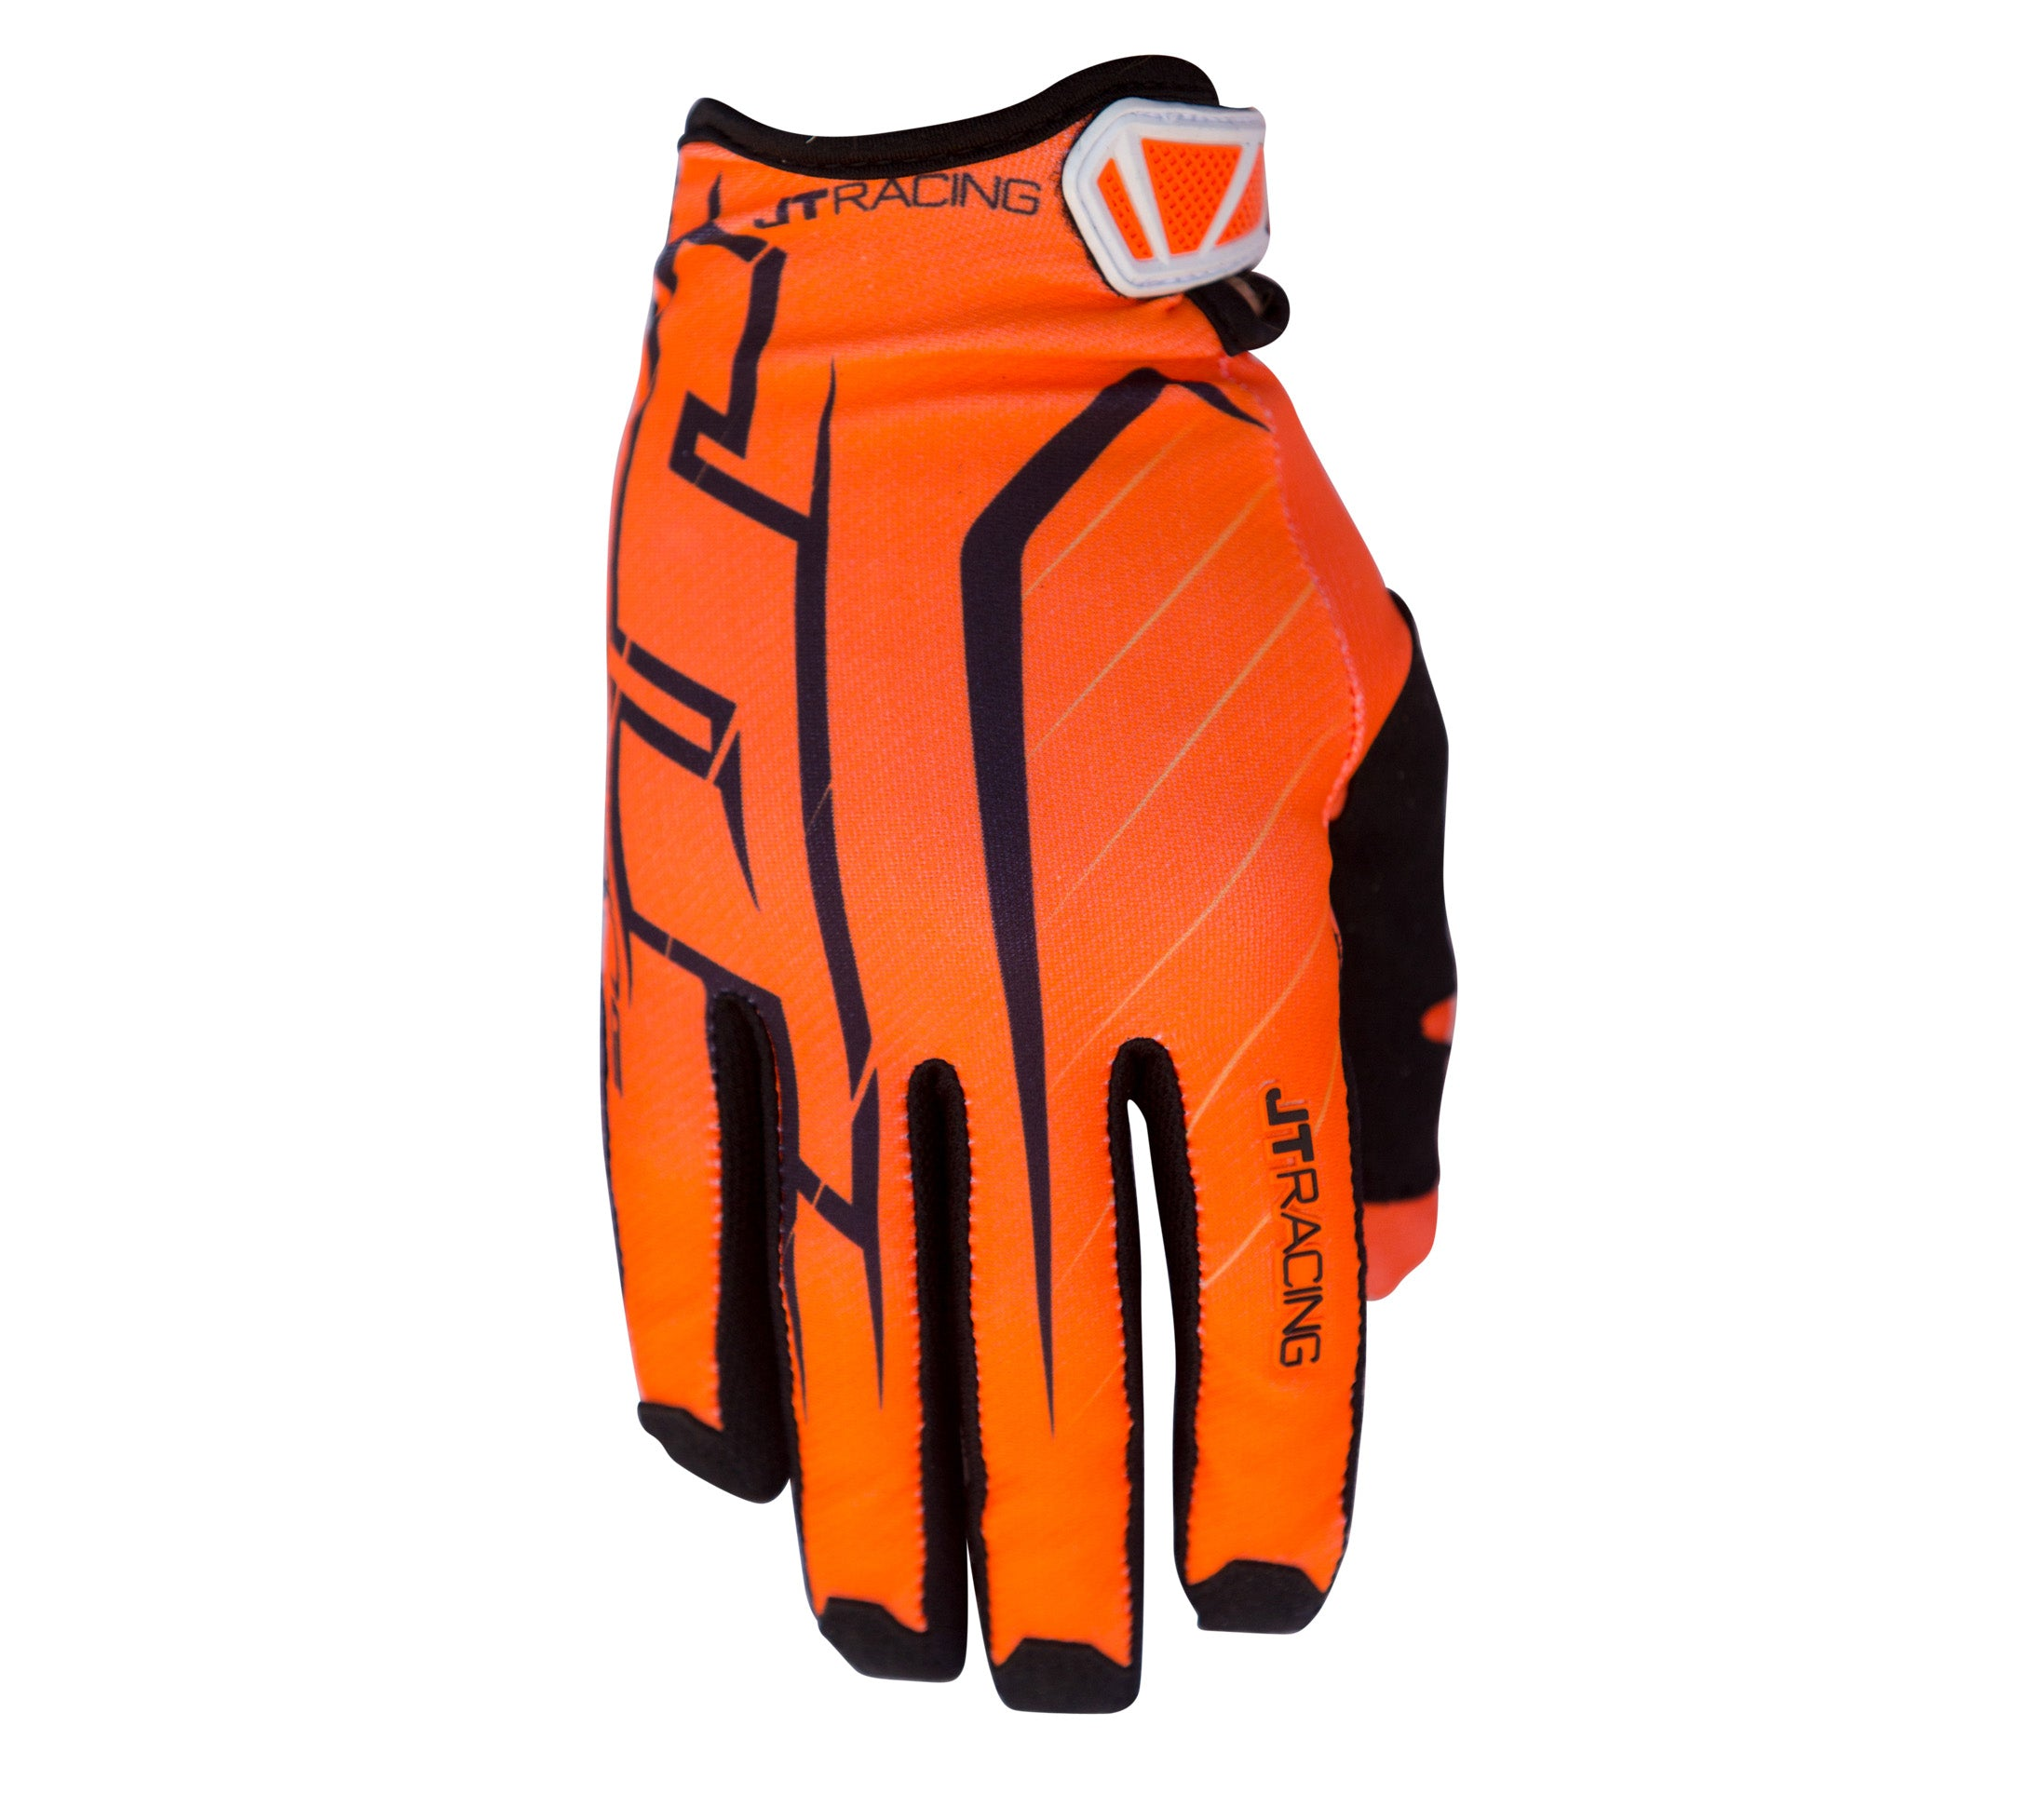 JT Racing USA-Lite Turbo Glove, Orange/Black